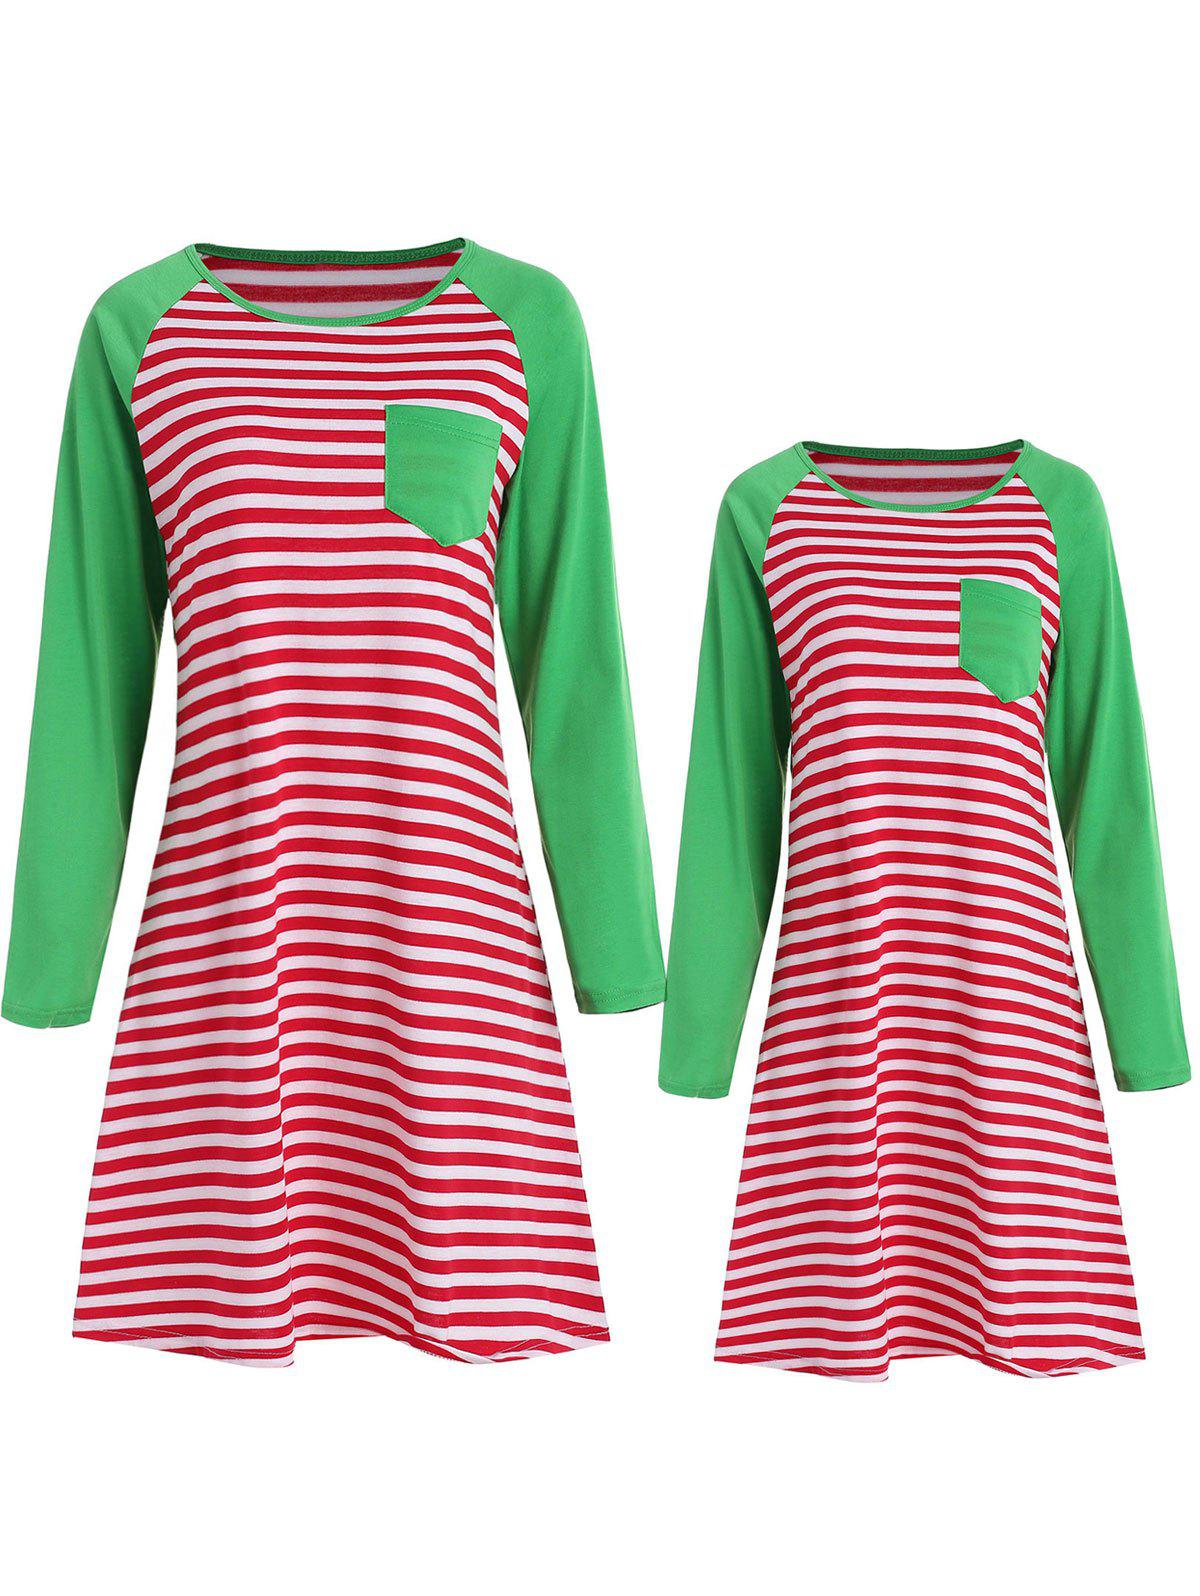 Shop Mother and Daughter Matching Stripe Sleeping Dress